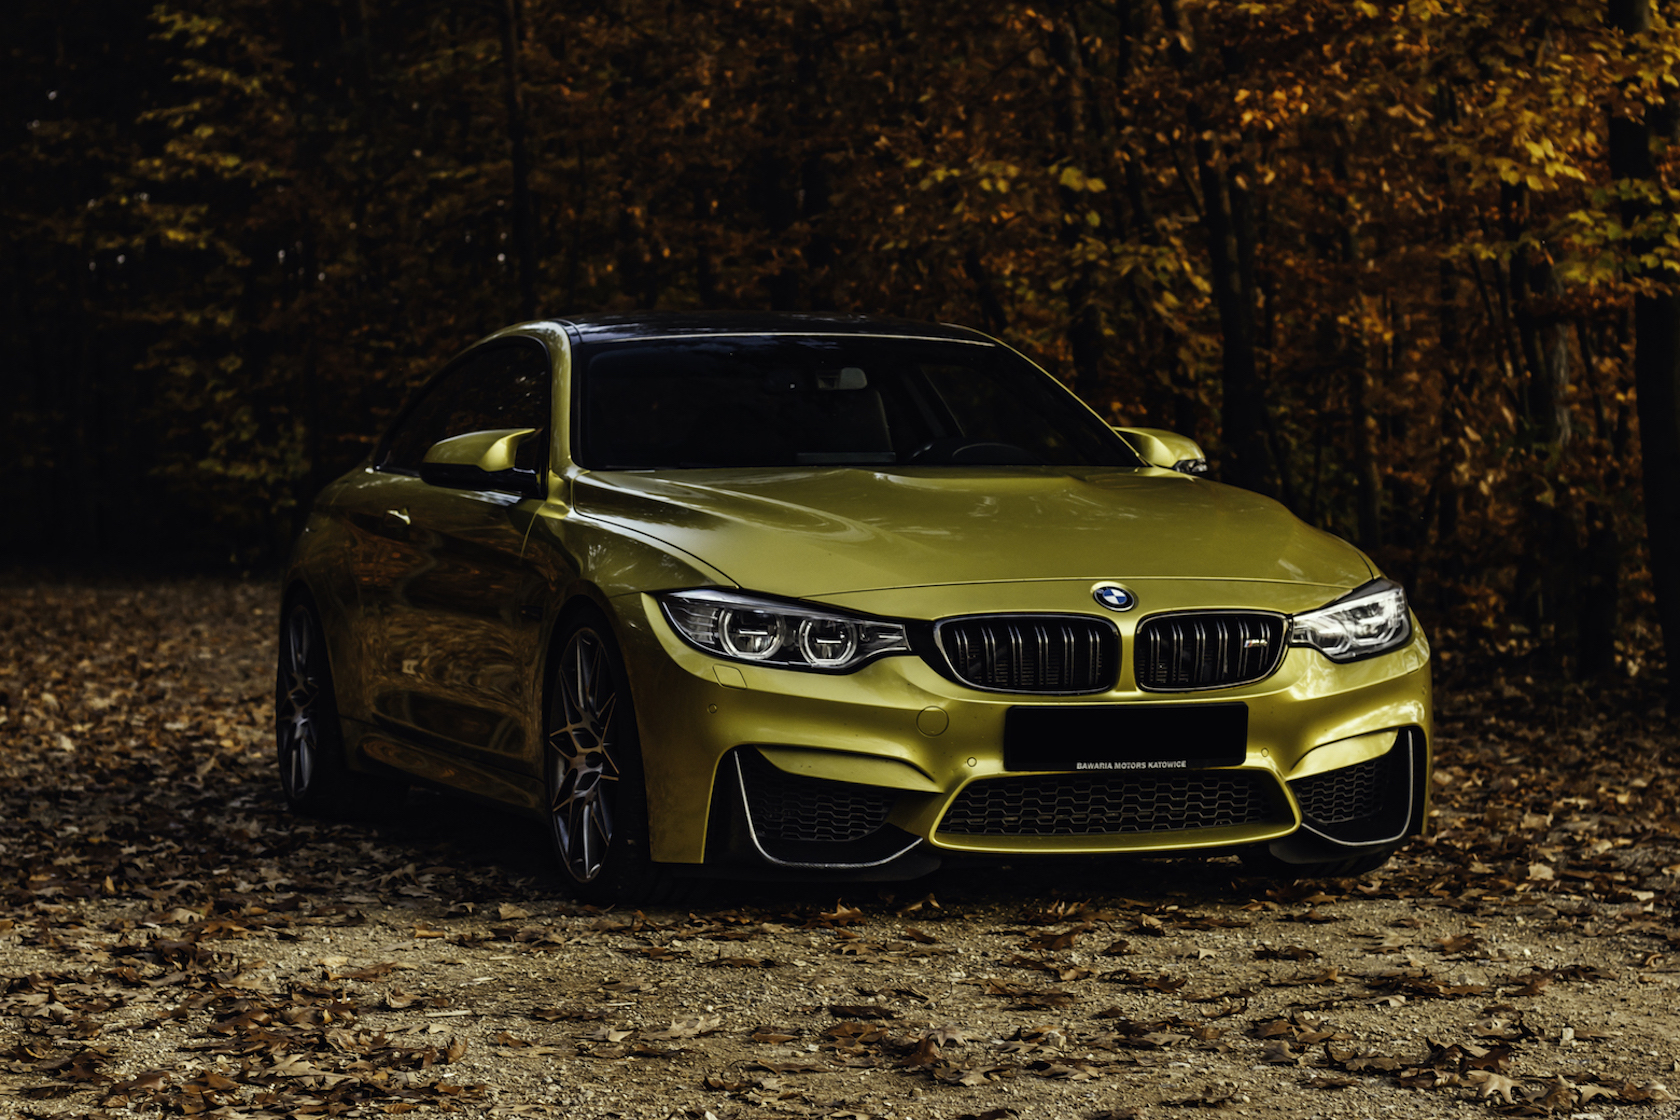 Instagrammer davs0 and his BMW M4 Coupé